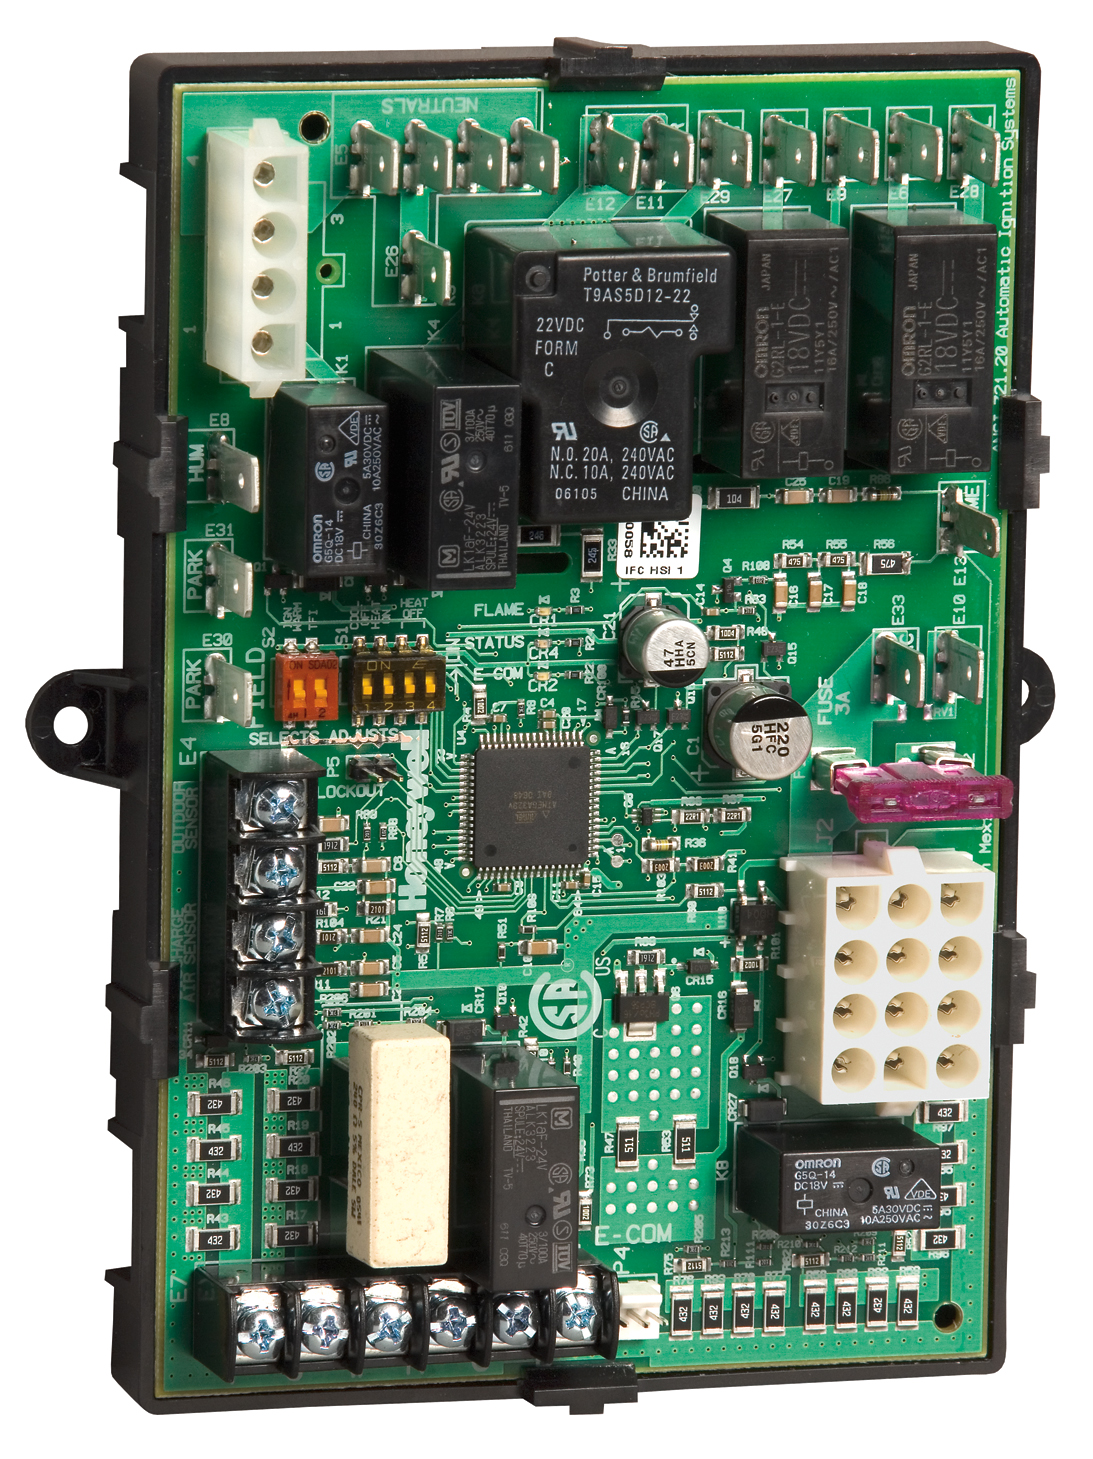 medium resolution of board comes installed inside of a plastic tray for easy installation and protection against